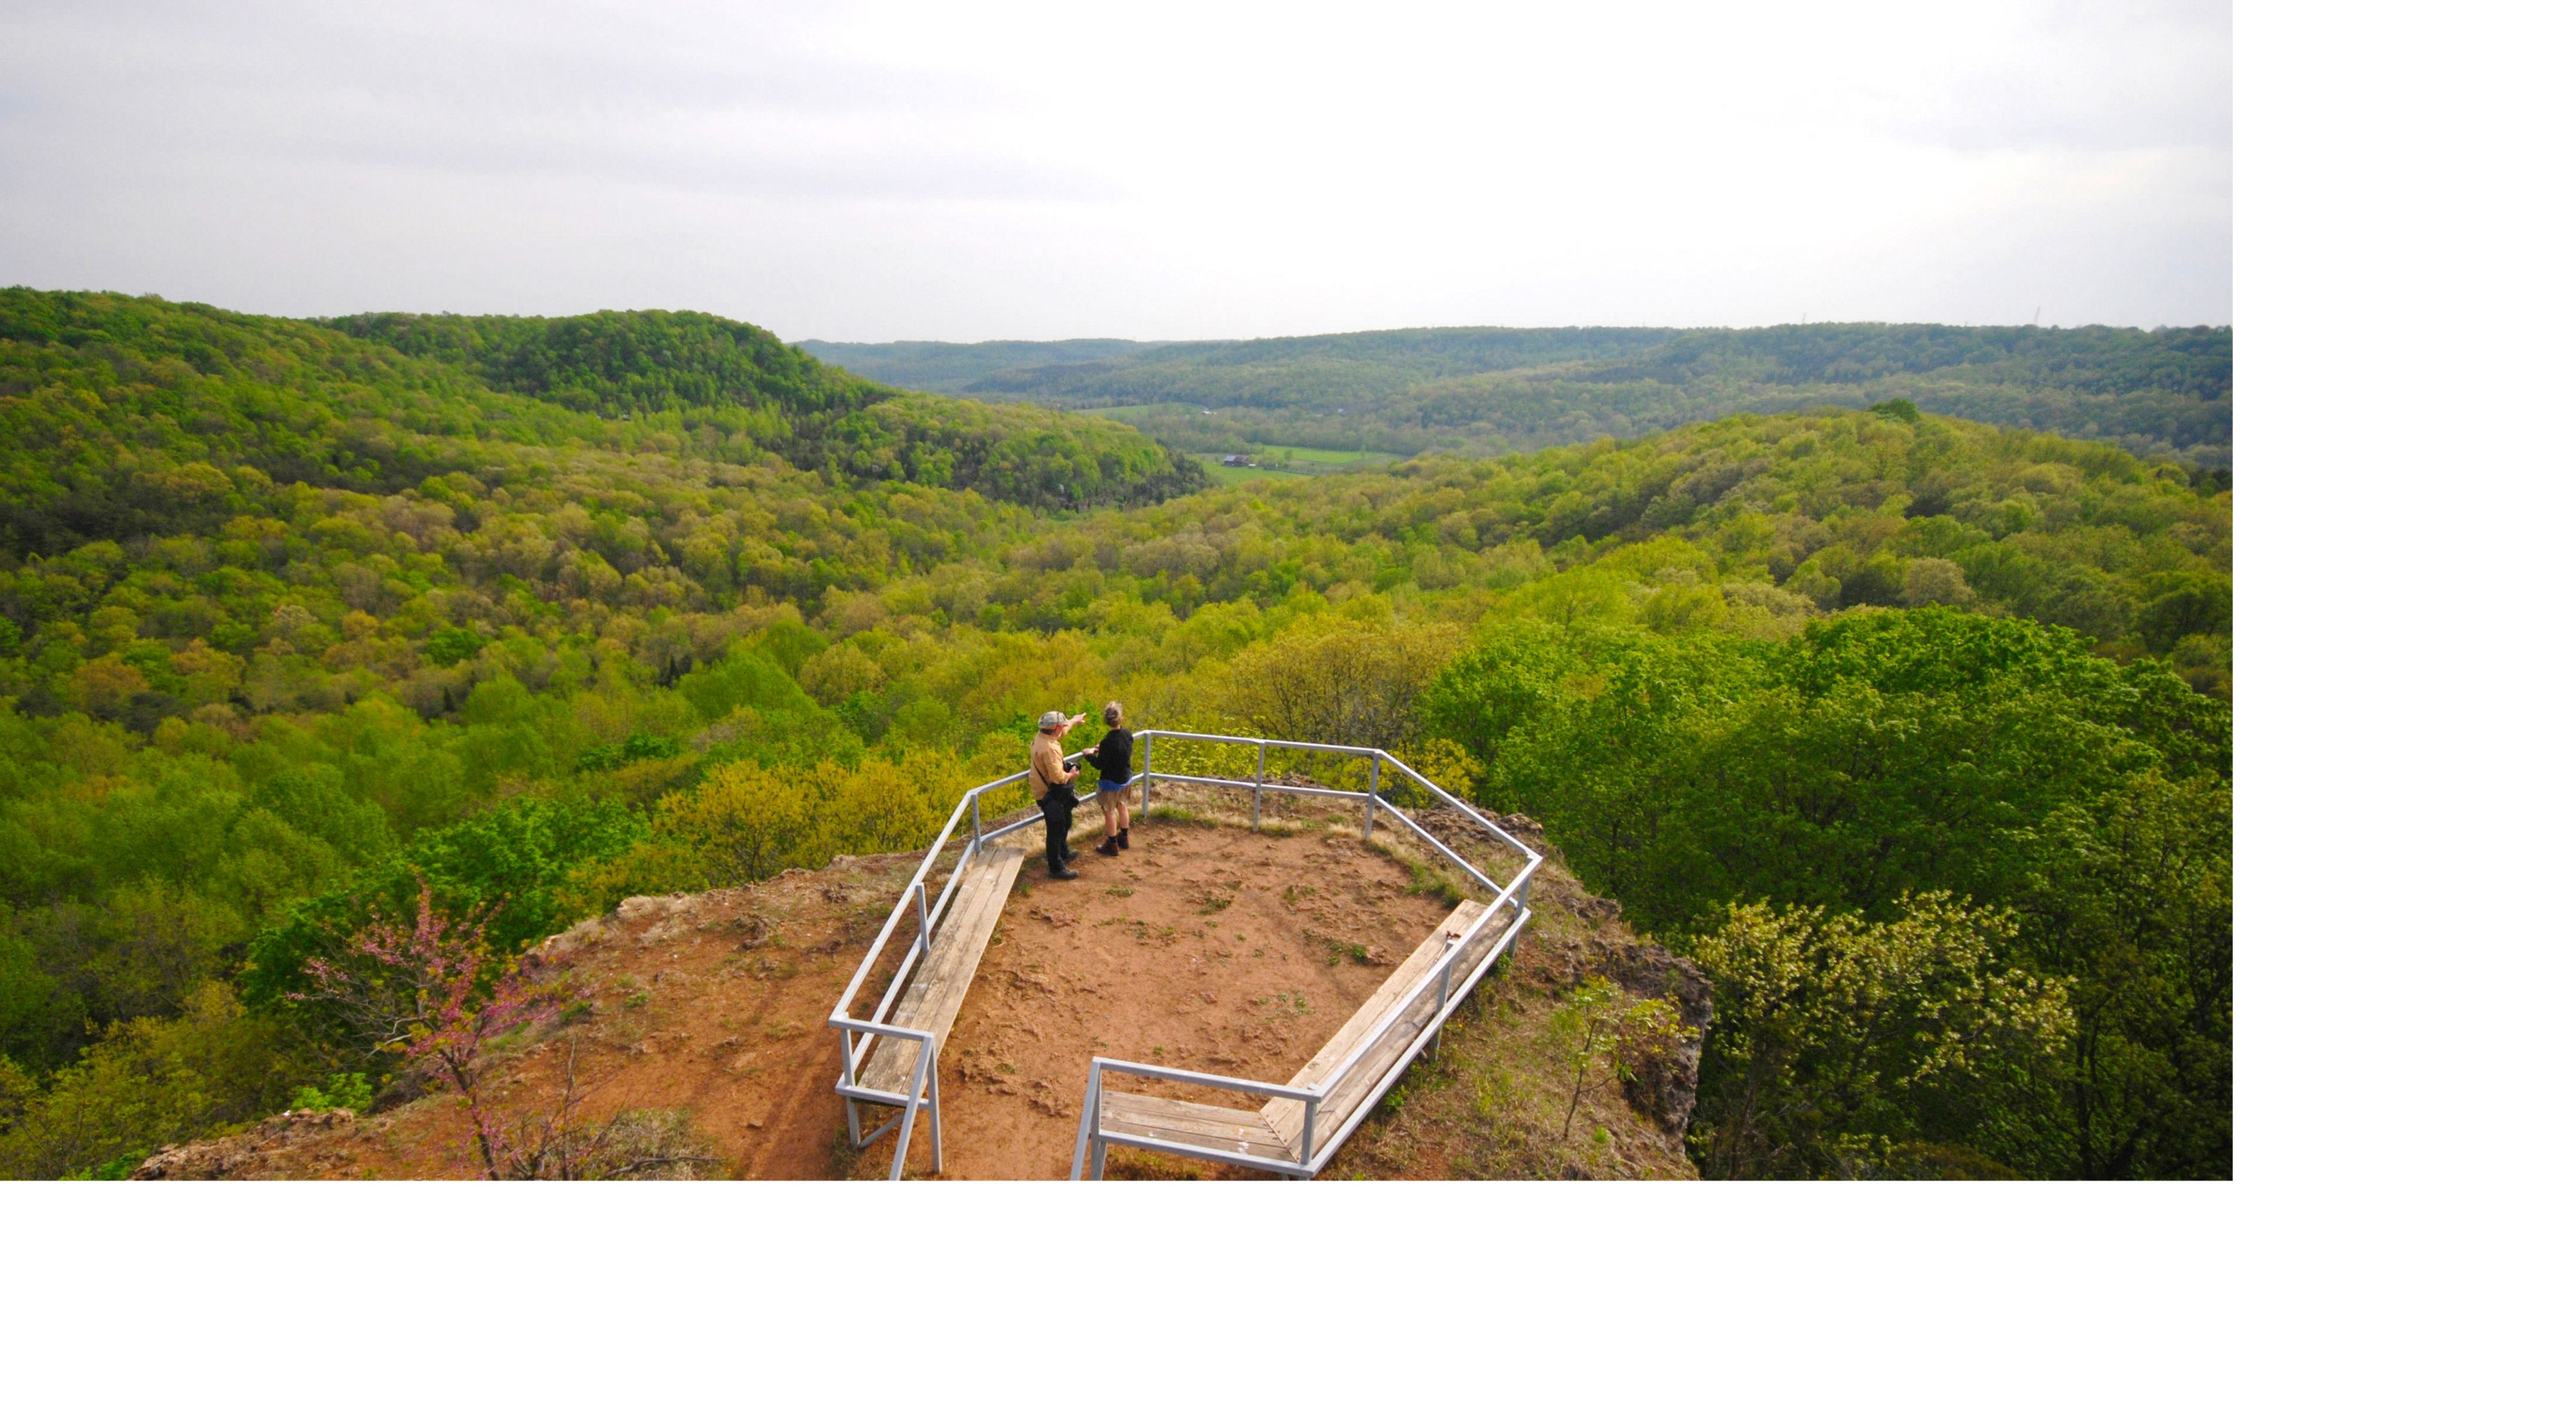 A drone camera view of the overlook at Buzzardroost Rock at the Edge of Appalachia Preserve System.